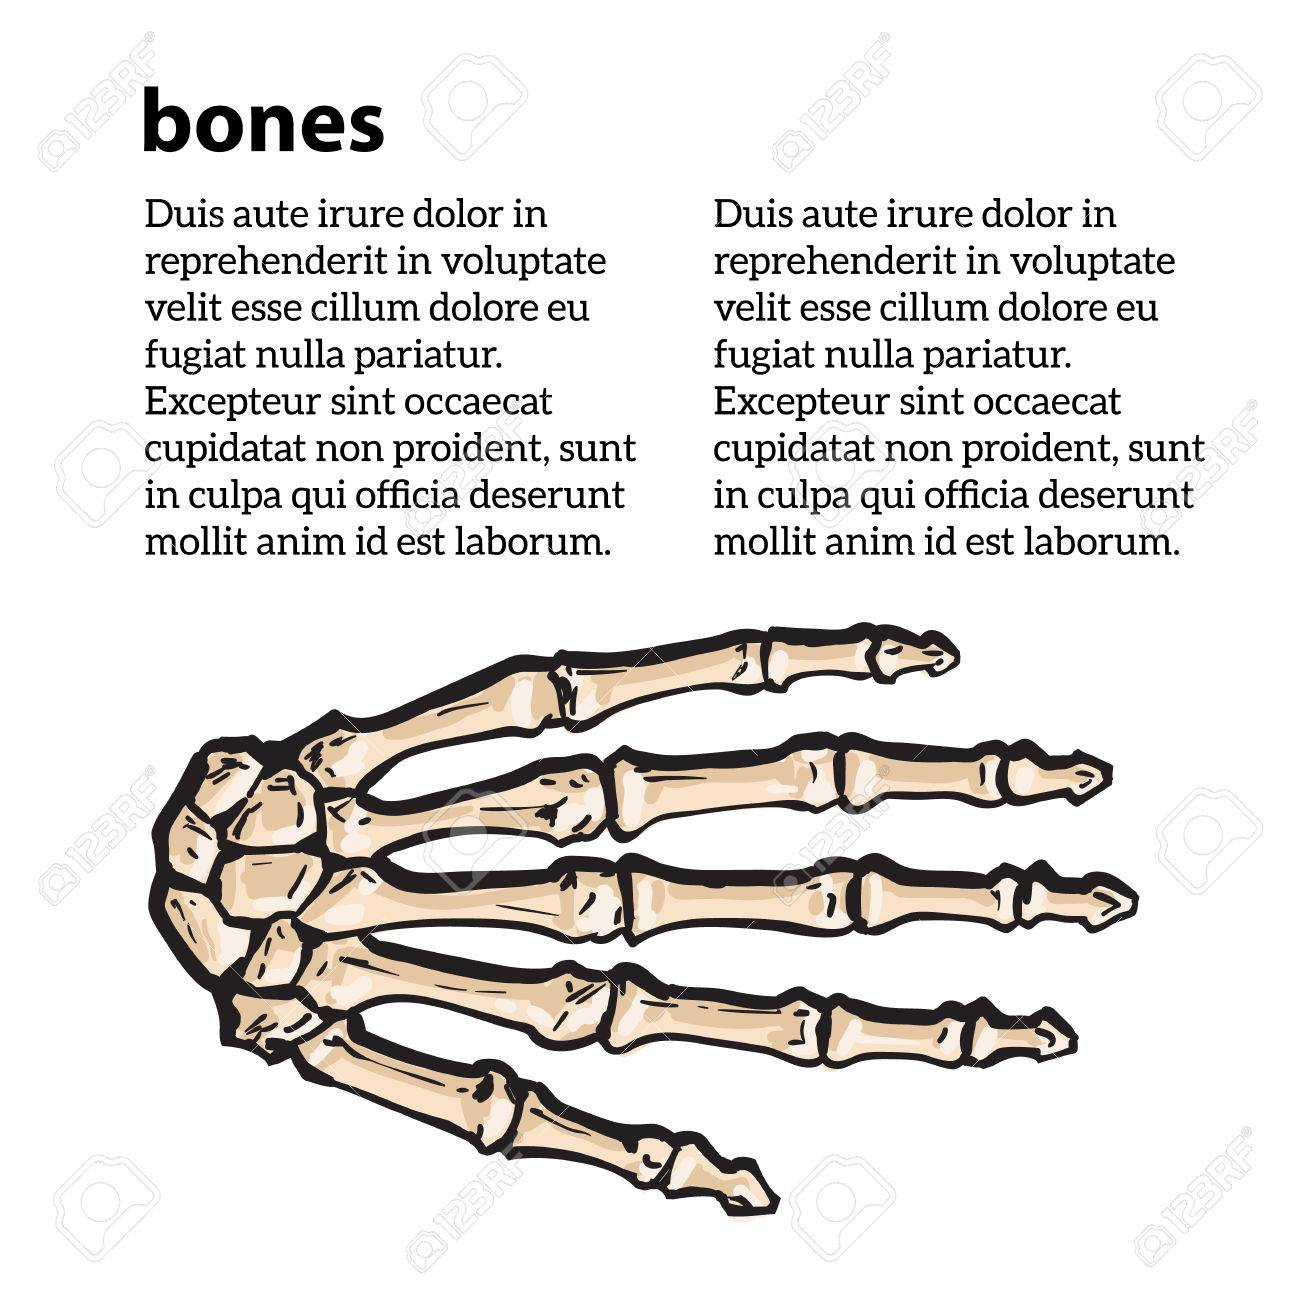 Bones Of The Human Hand Brushes Vector Illustration Sketch Drawn